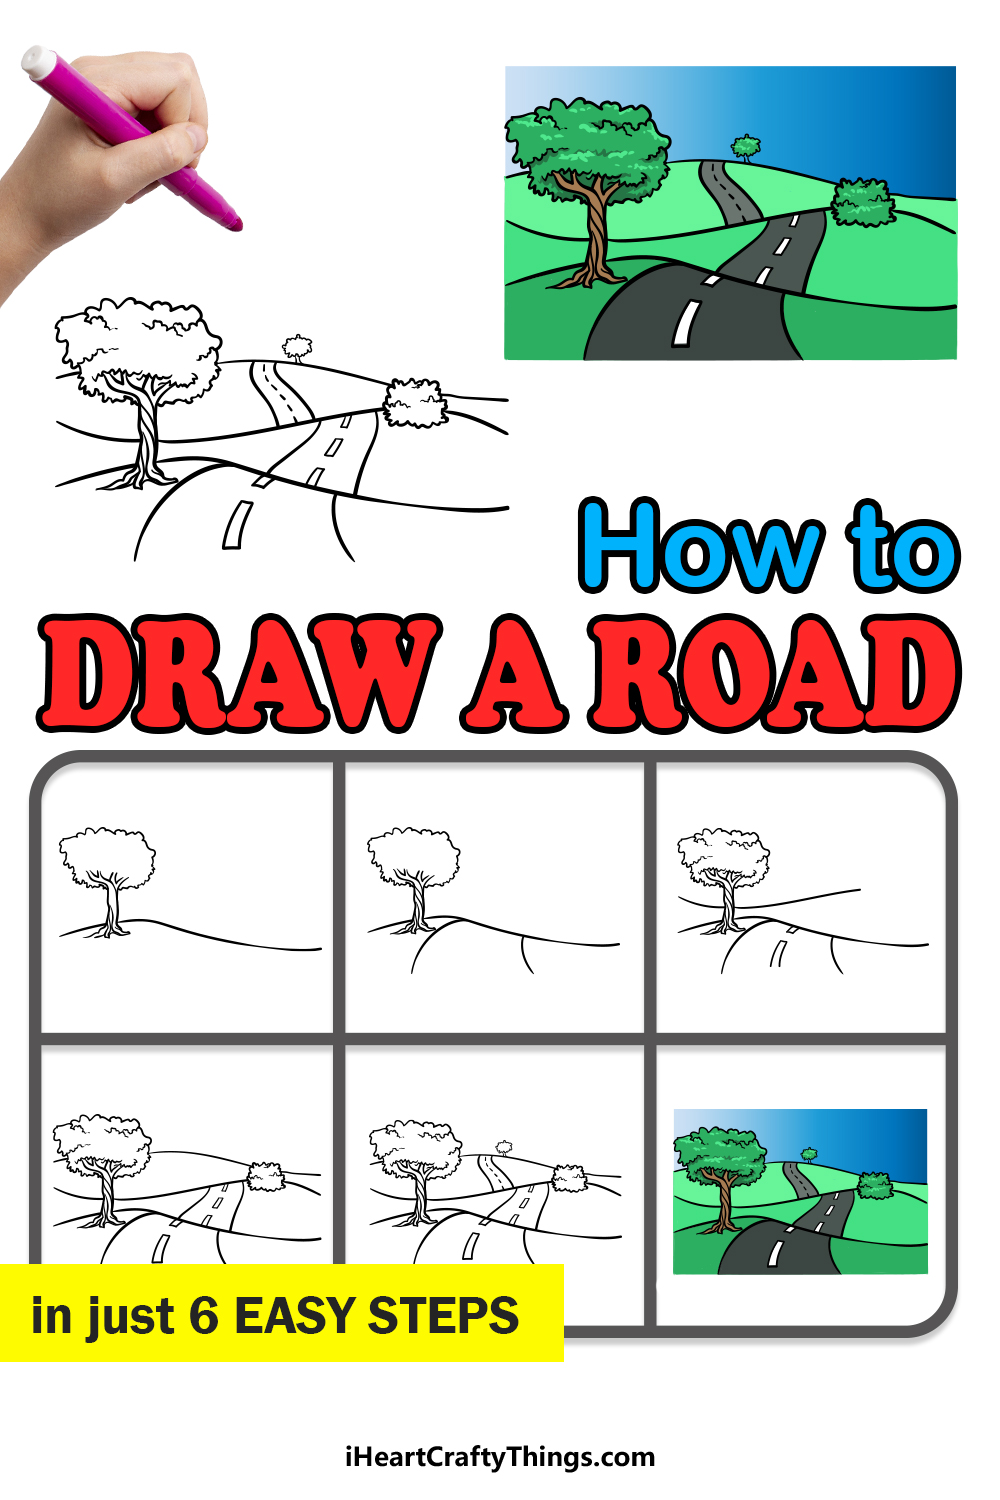 how to draw a road in 6 easy steps